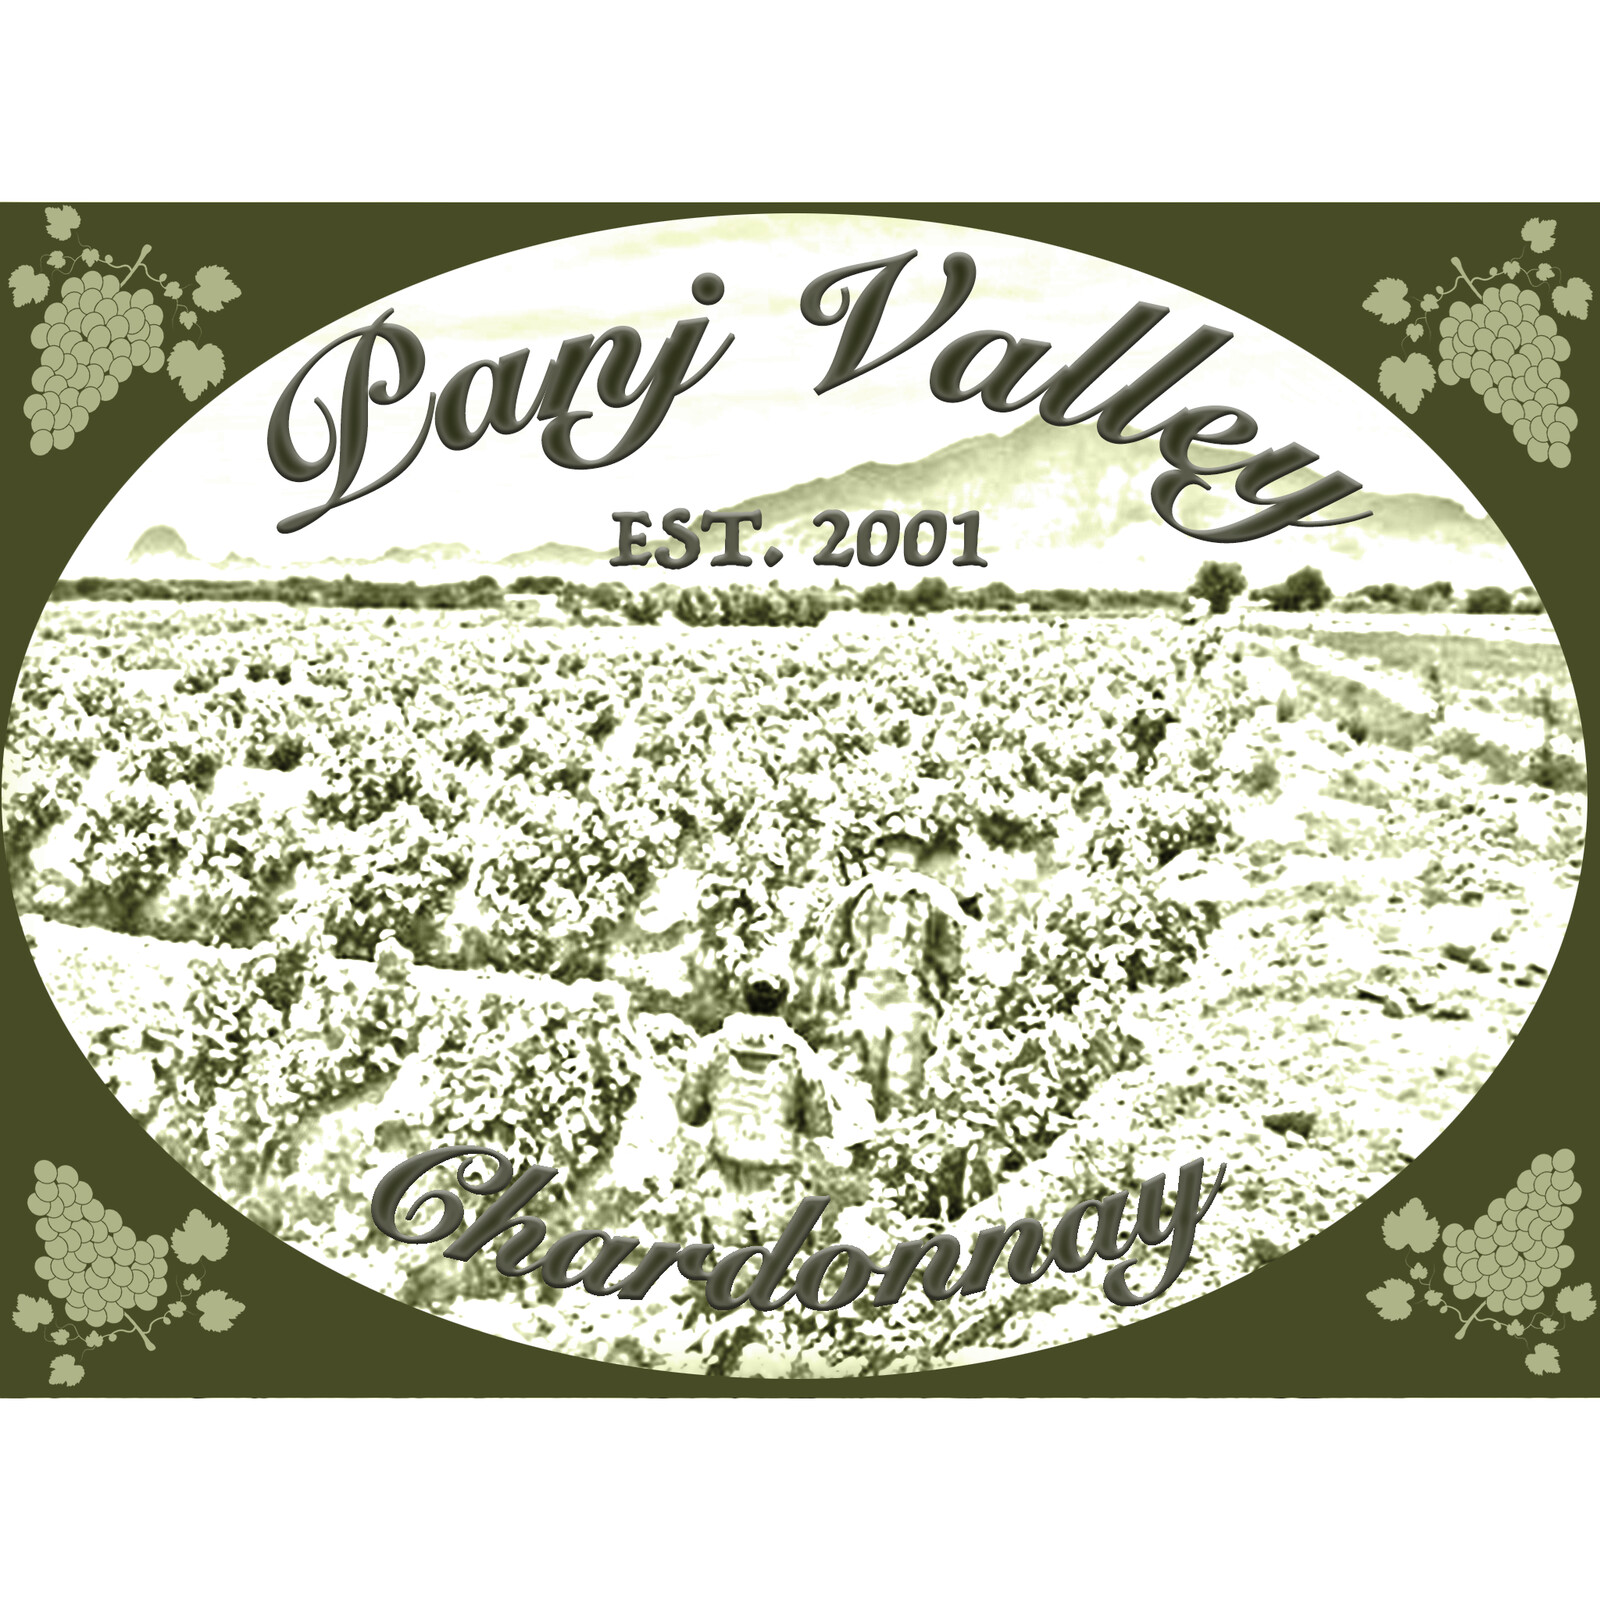 Wine label based off Afghan grape rows.